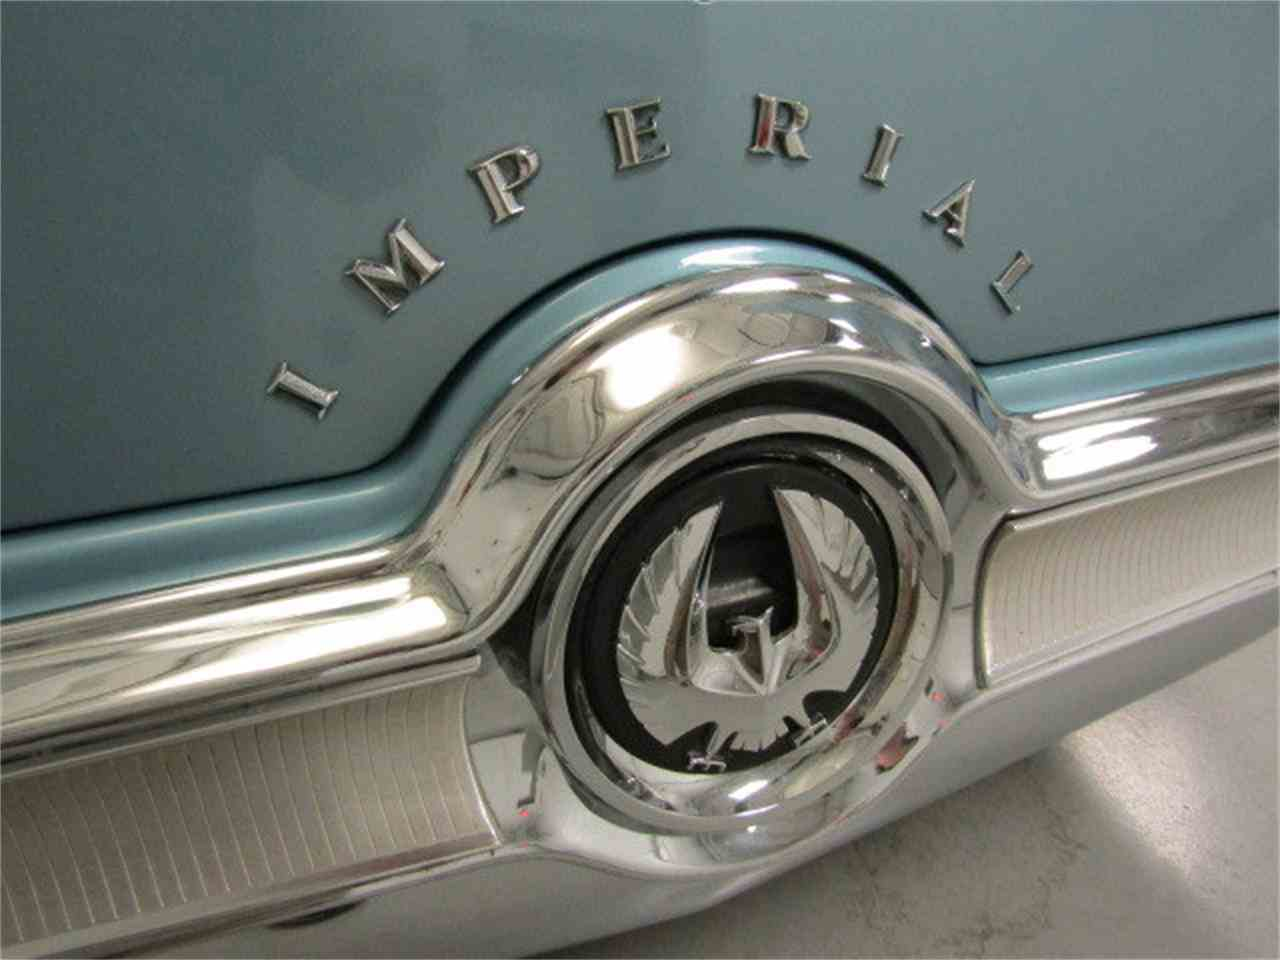 Large Picture of 1964 Chrysler Imperial - $21,970.00 - JLDR